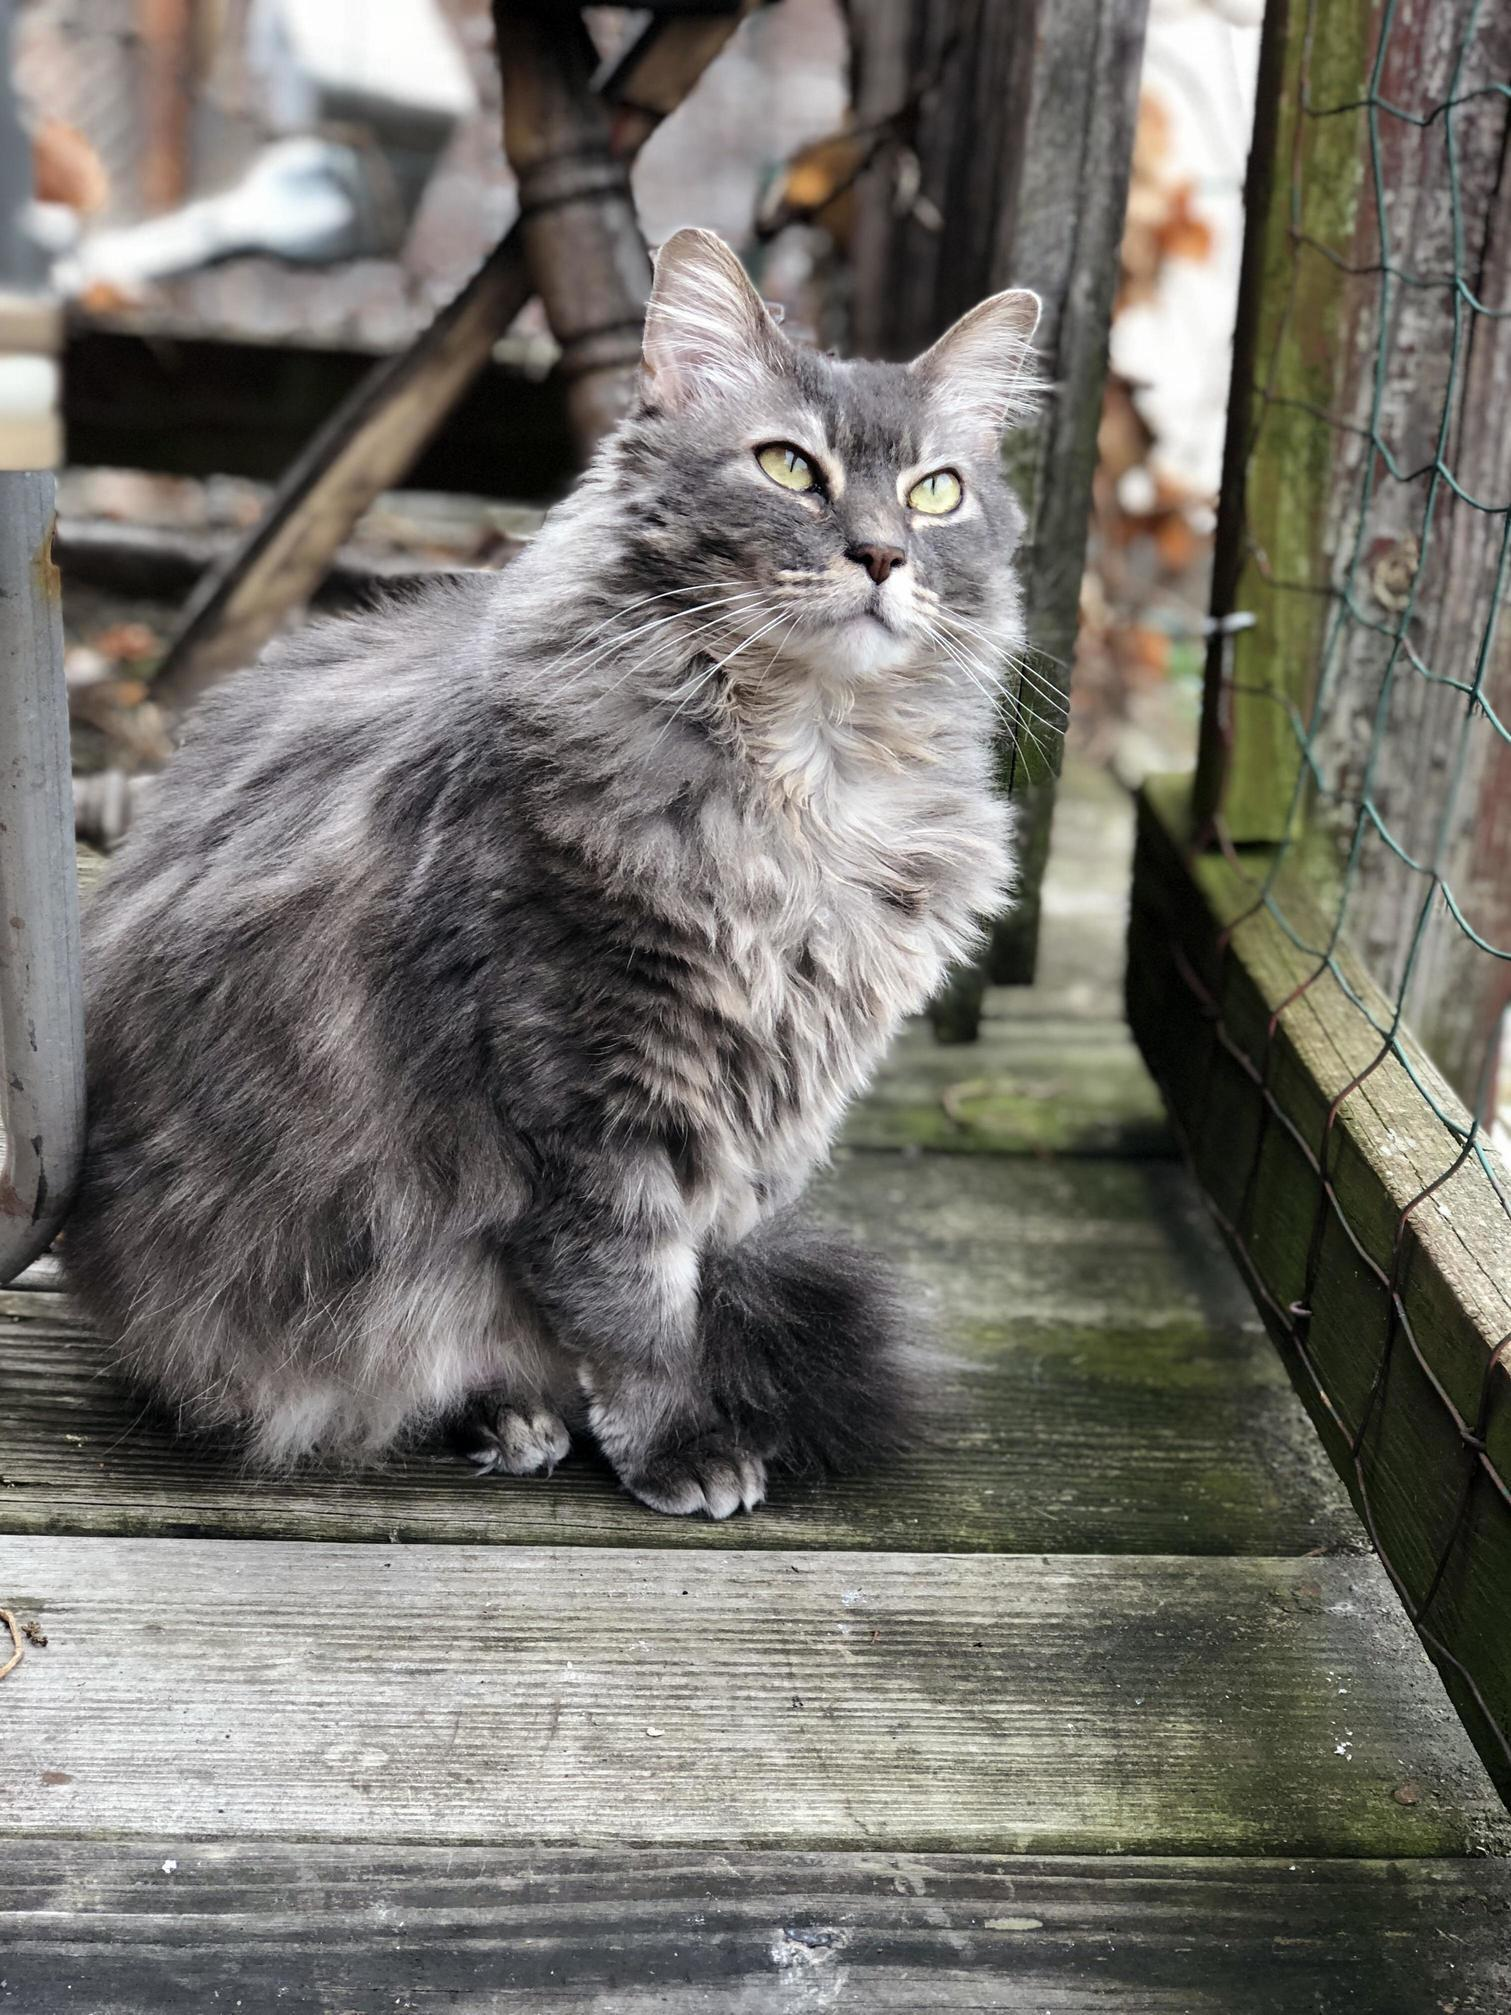 This majestic floof is my favourite thing to photograph.